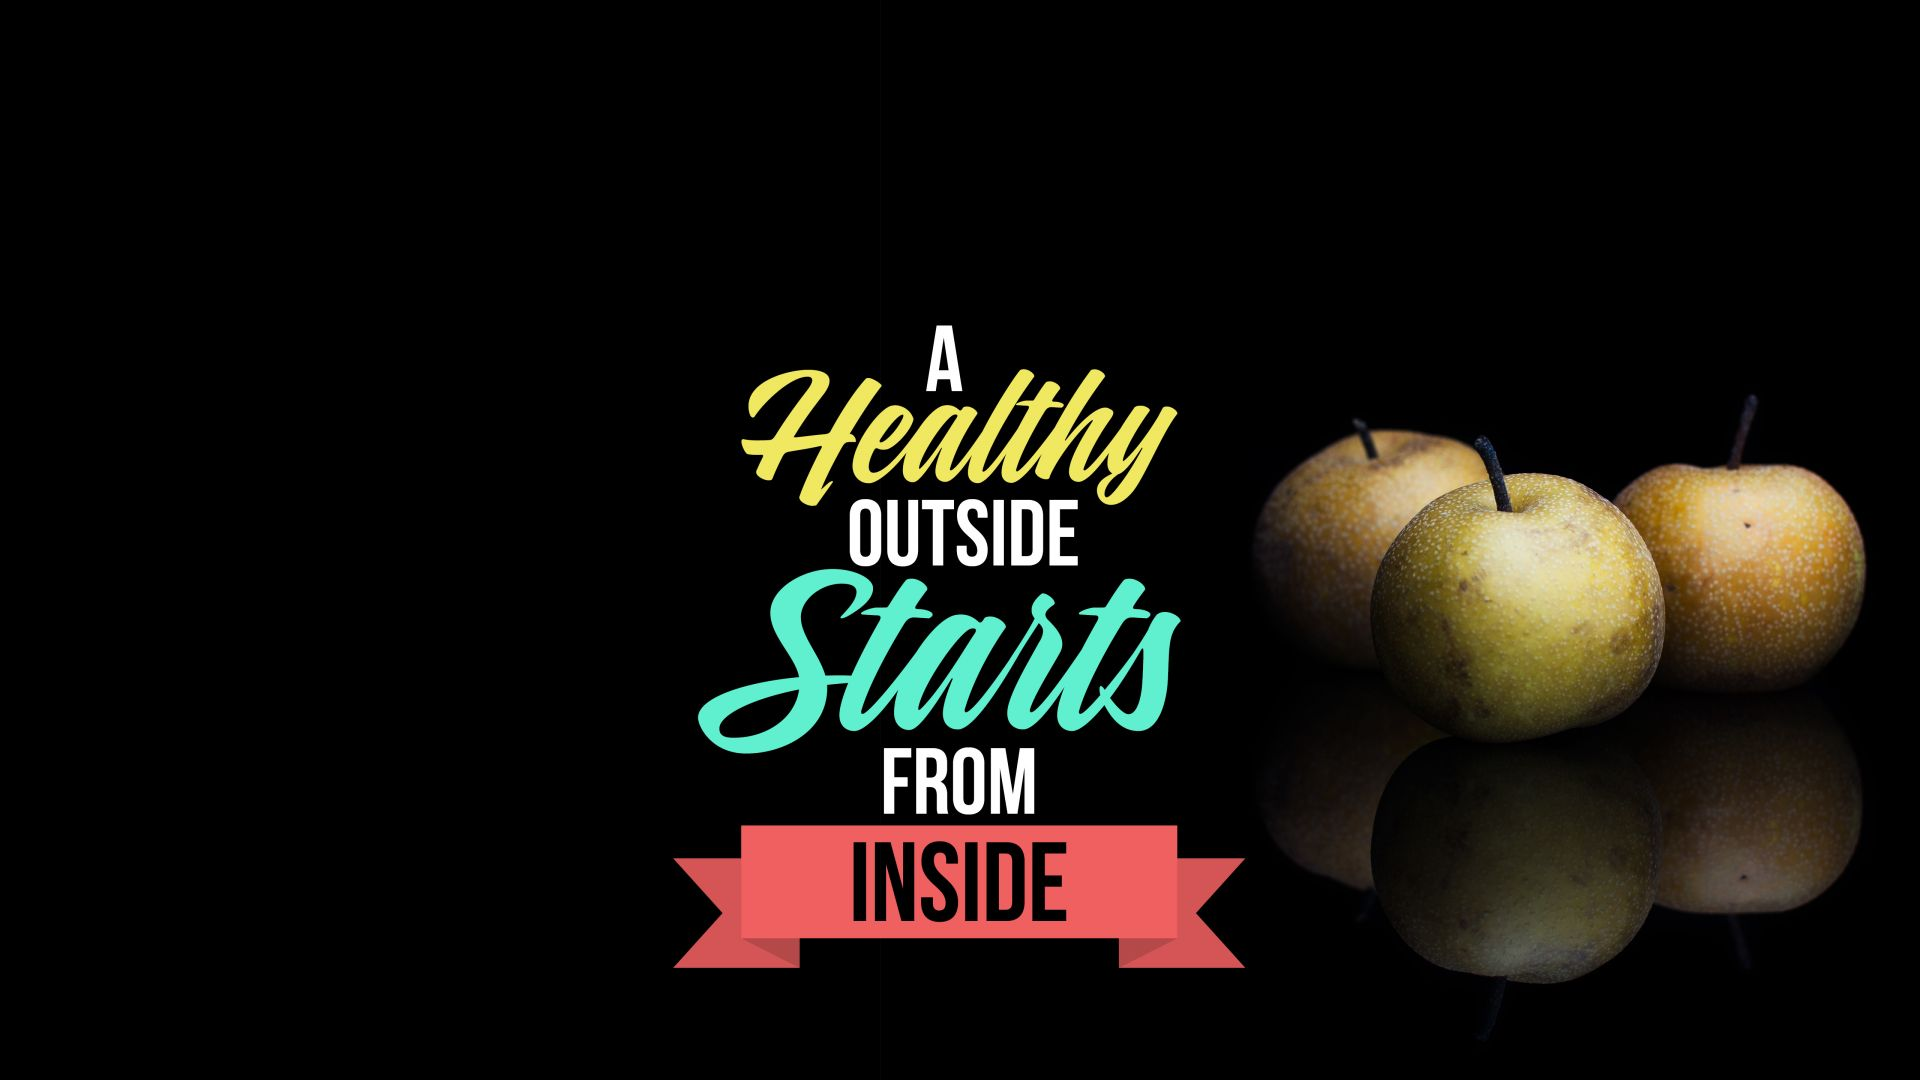 A healthy outside starts from inside